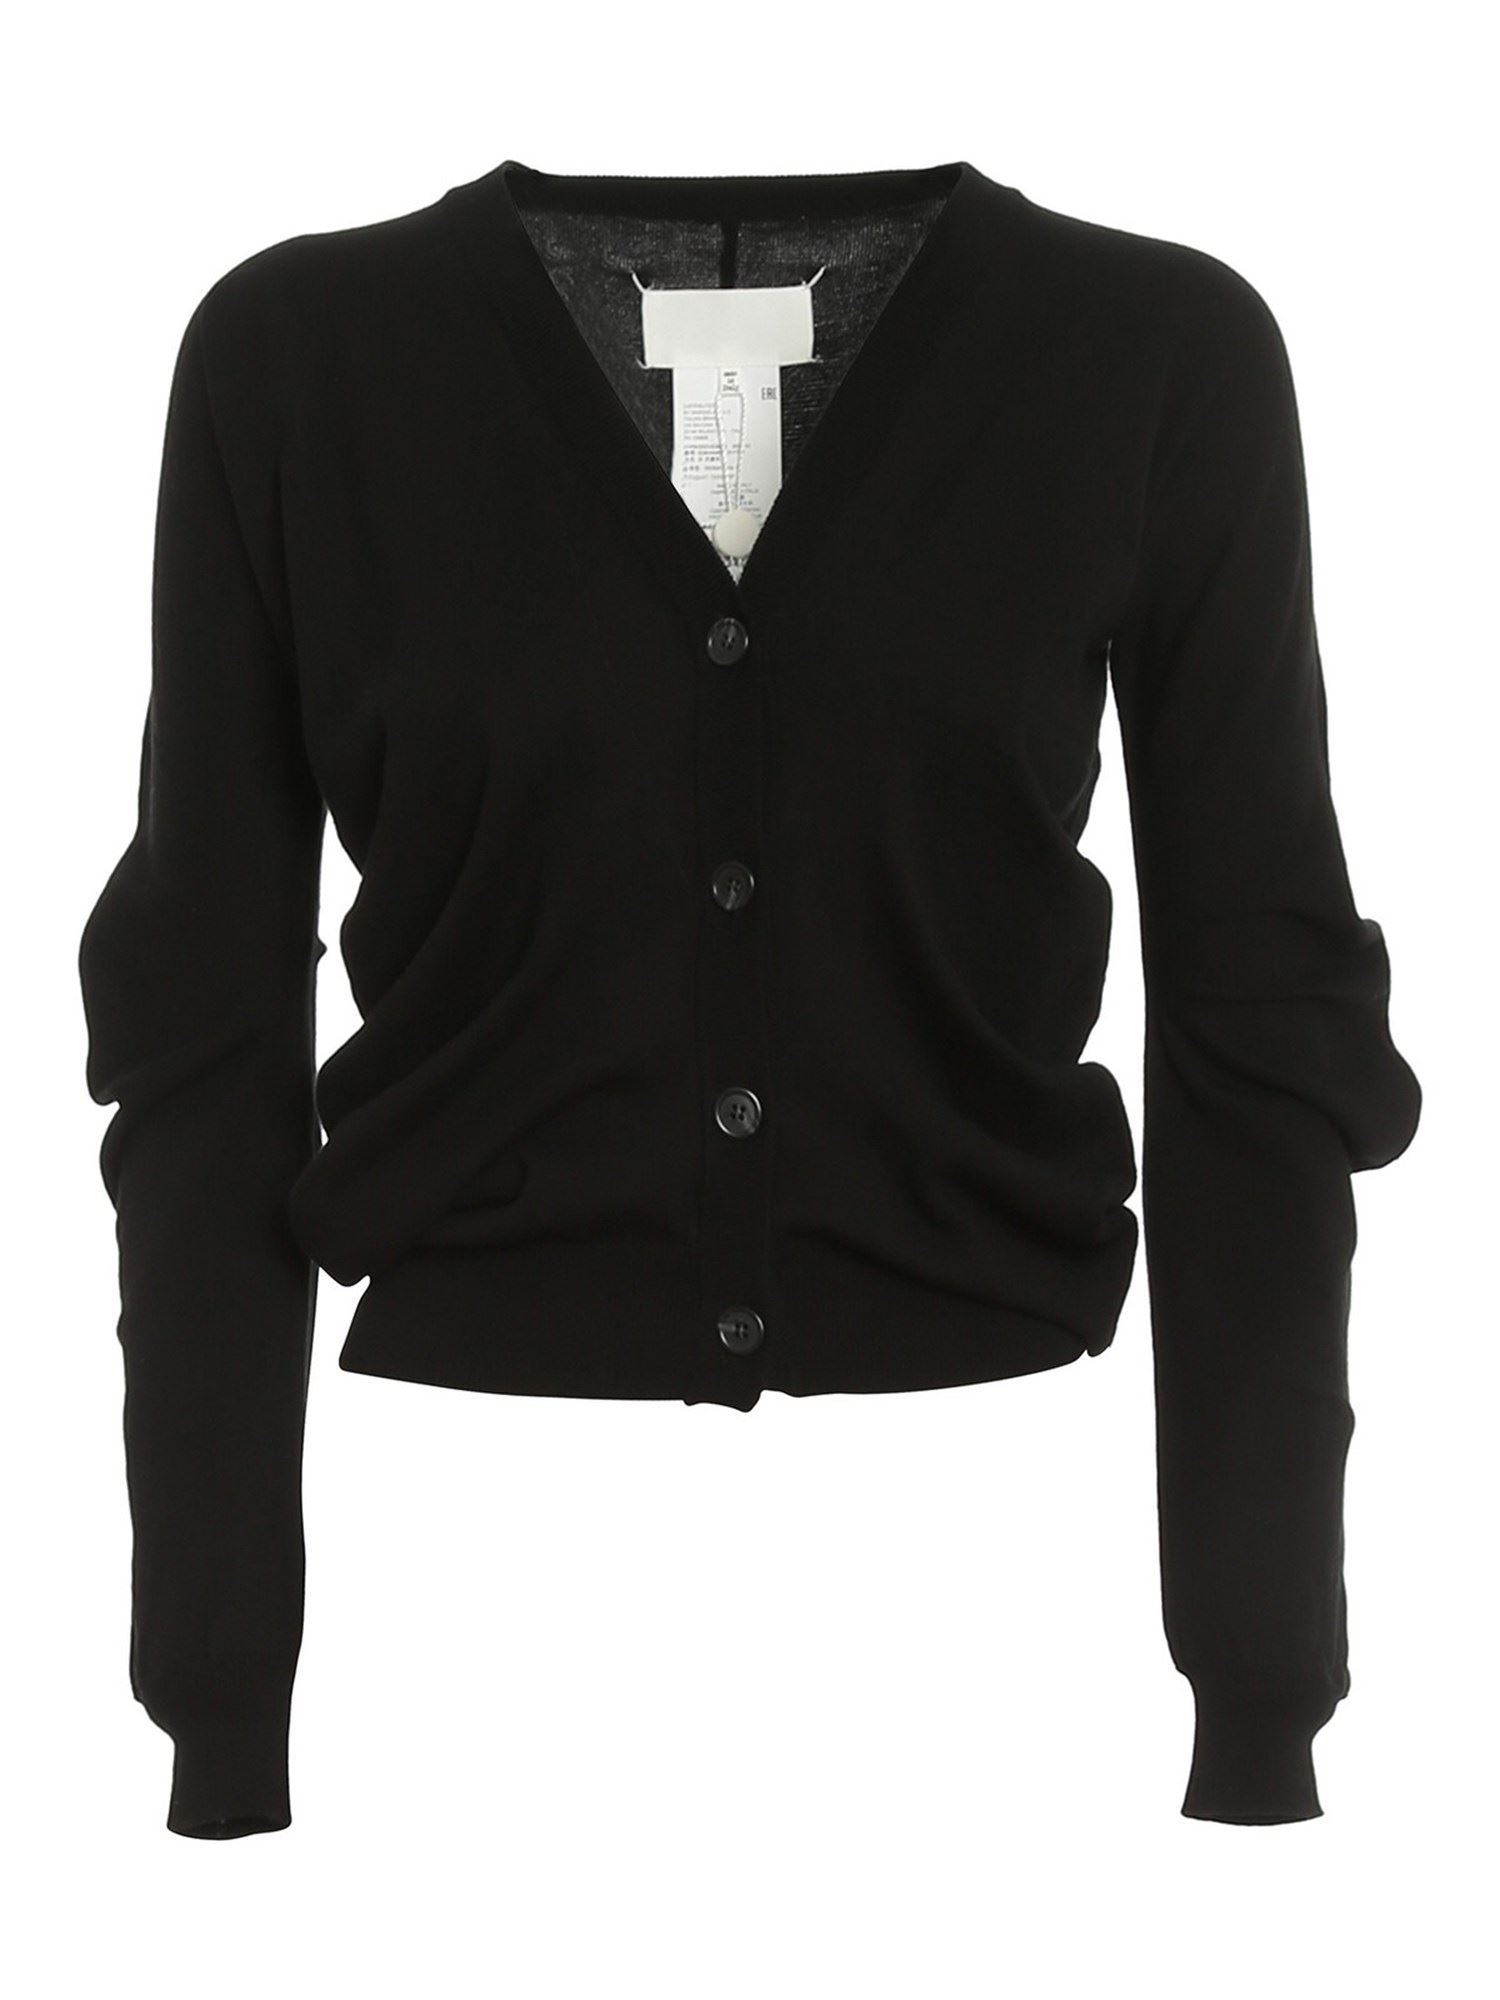 Maison Margiela ASYMMETRIC CARDIGAN IN BLACK